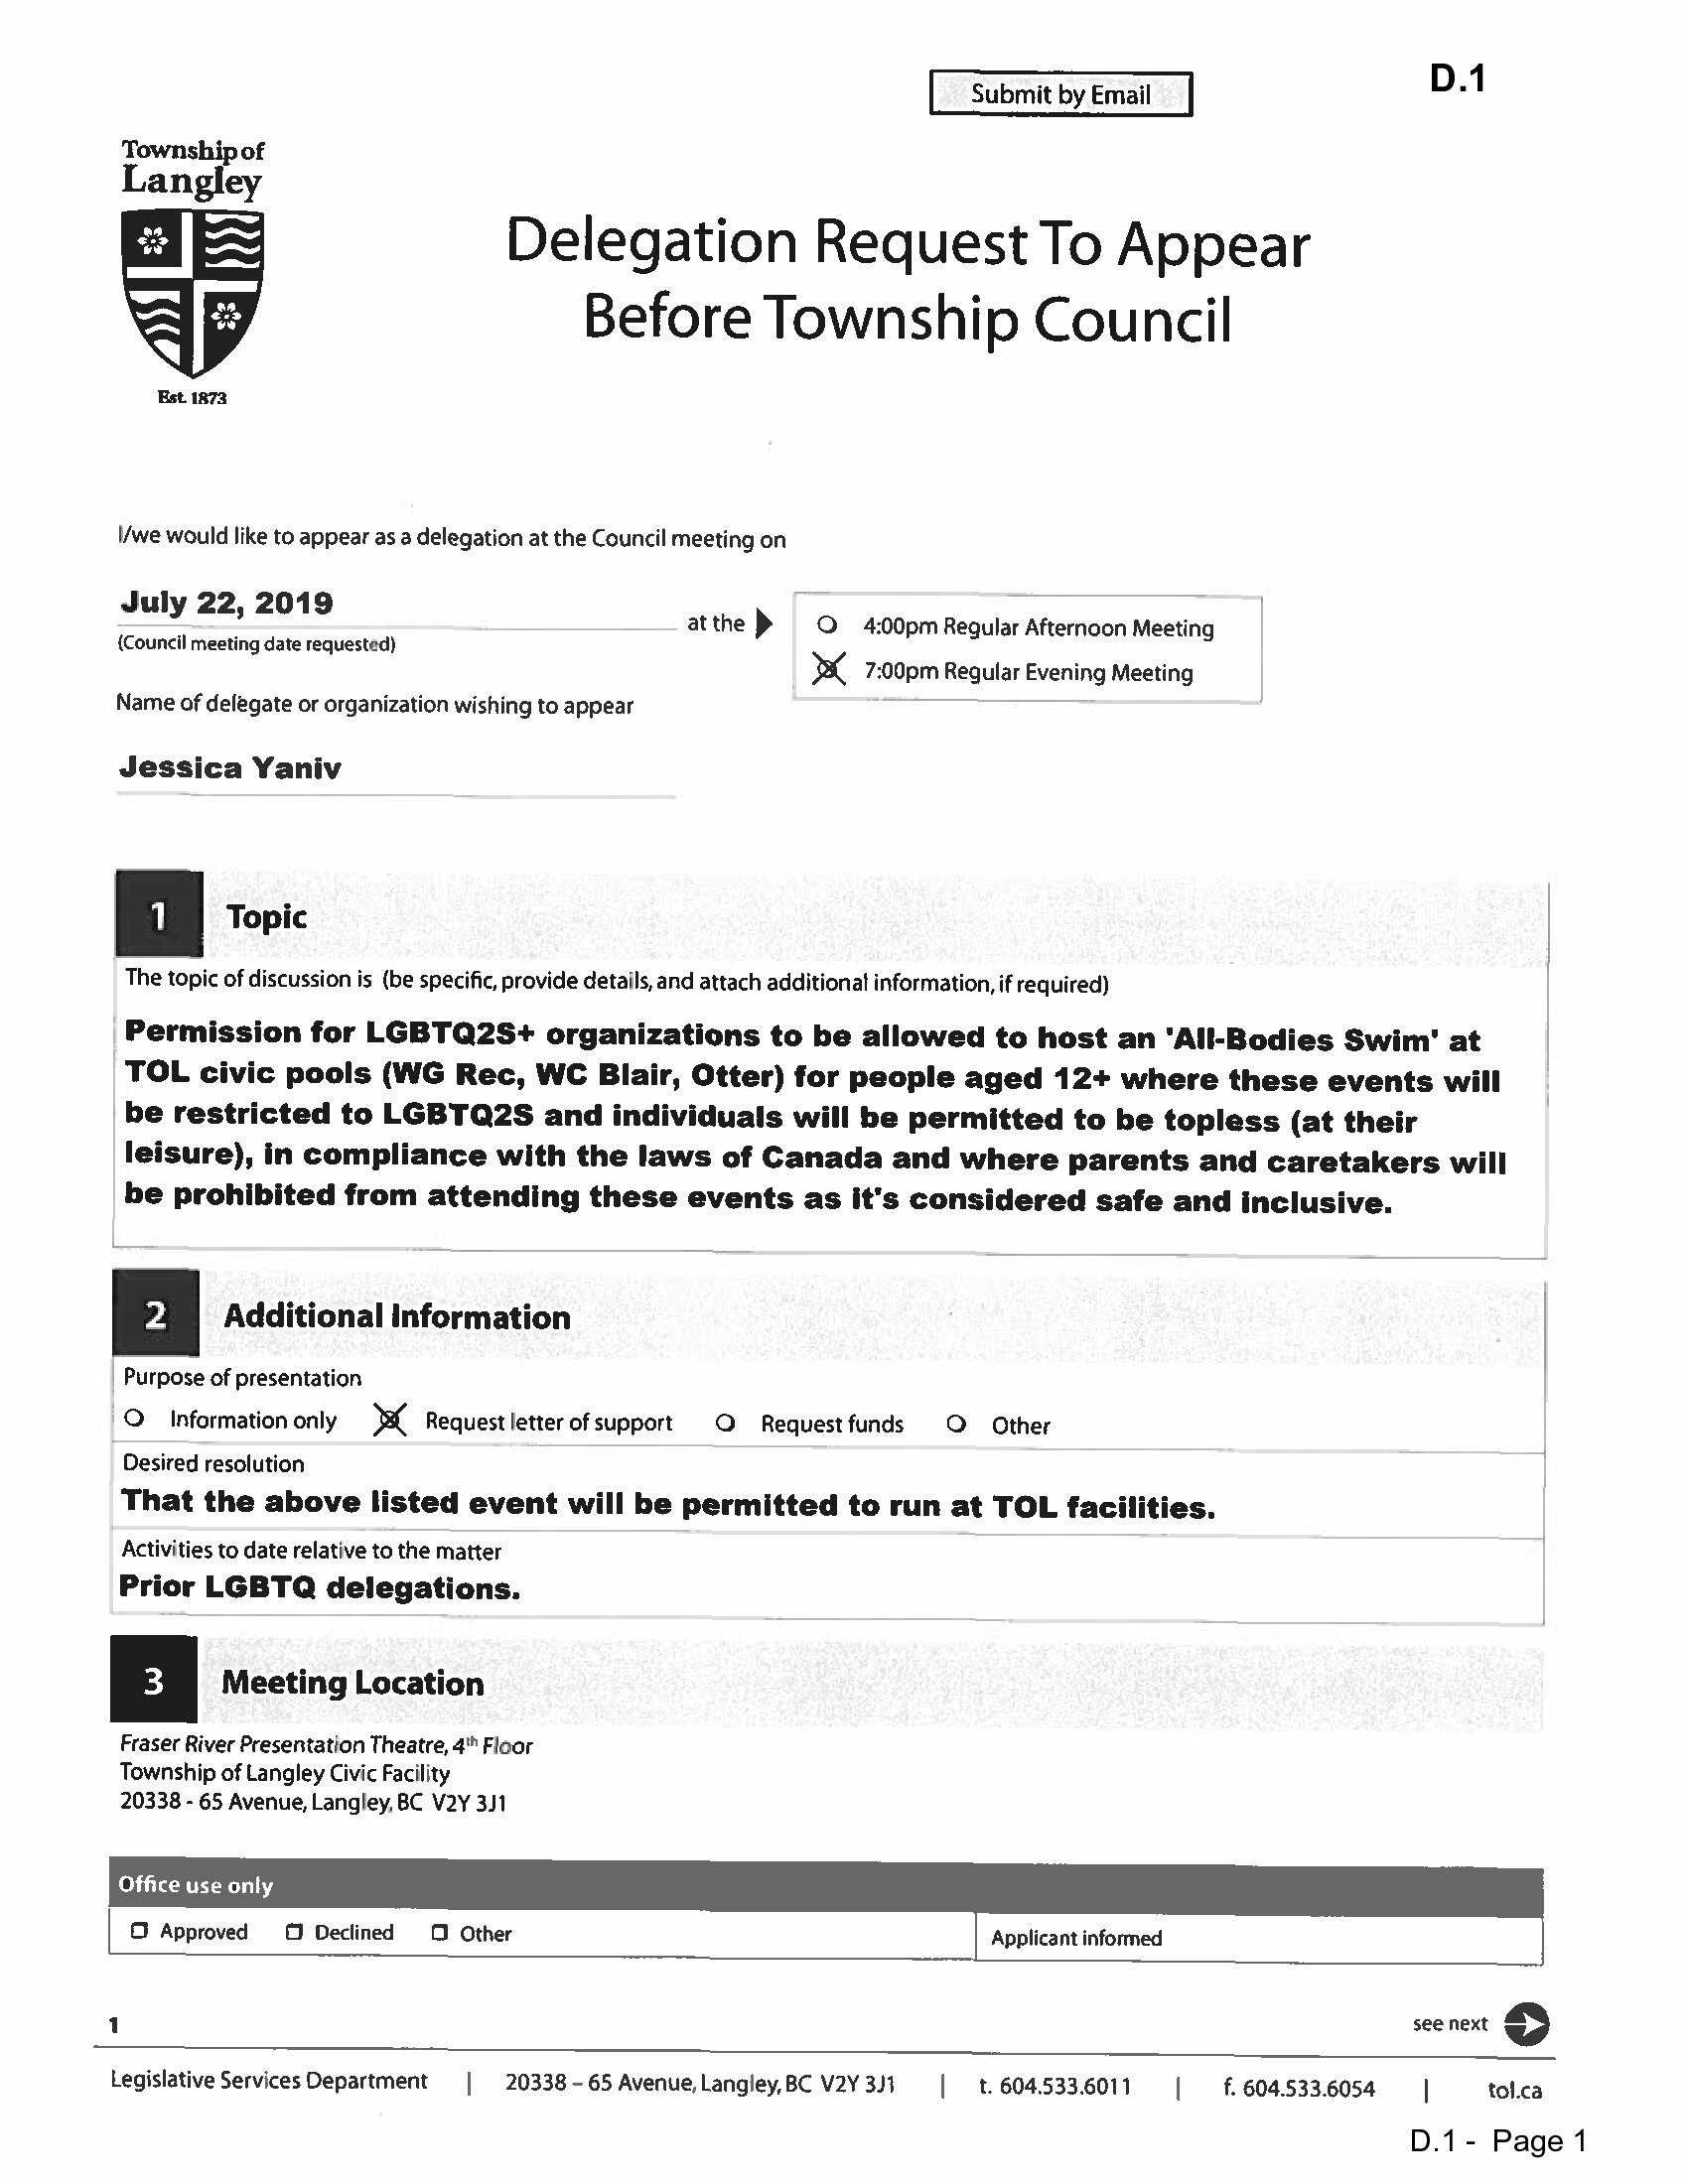 Jessica Yaniv is scheduled to appear before the Township of Langley Council to ask permission for a topless, all-bodies-swim. (Township of Langley)